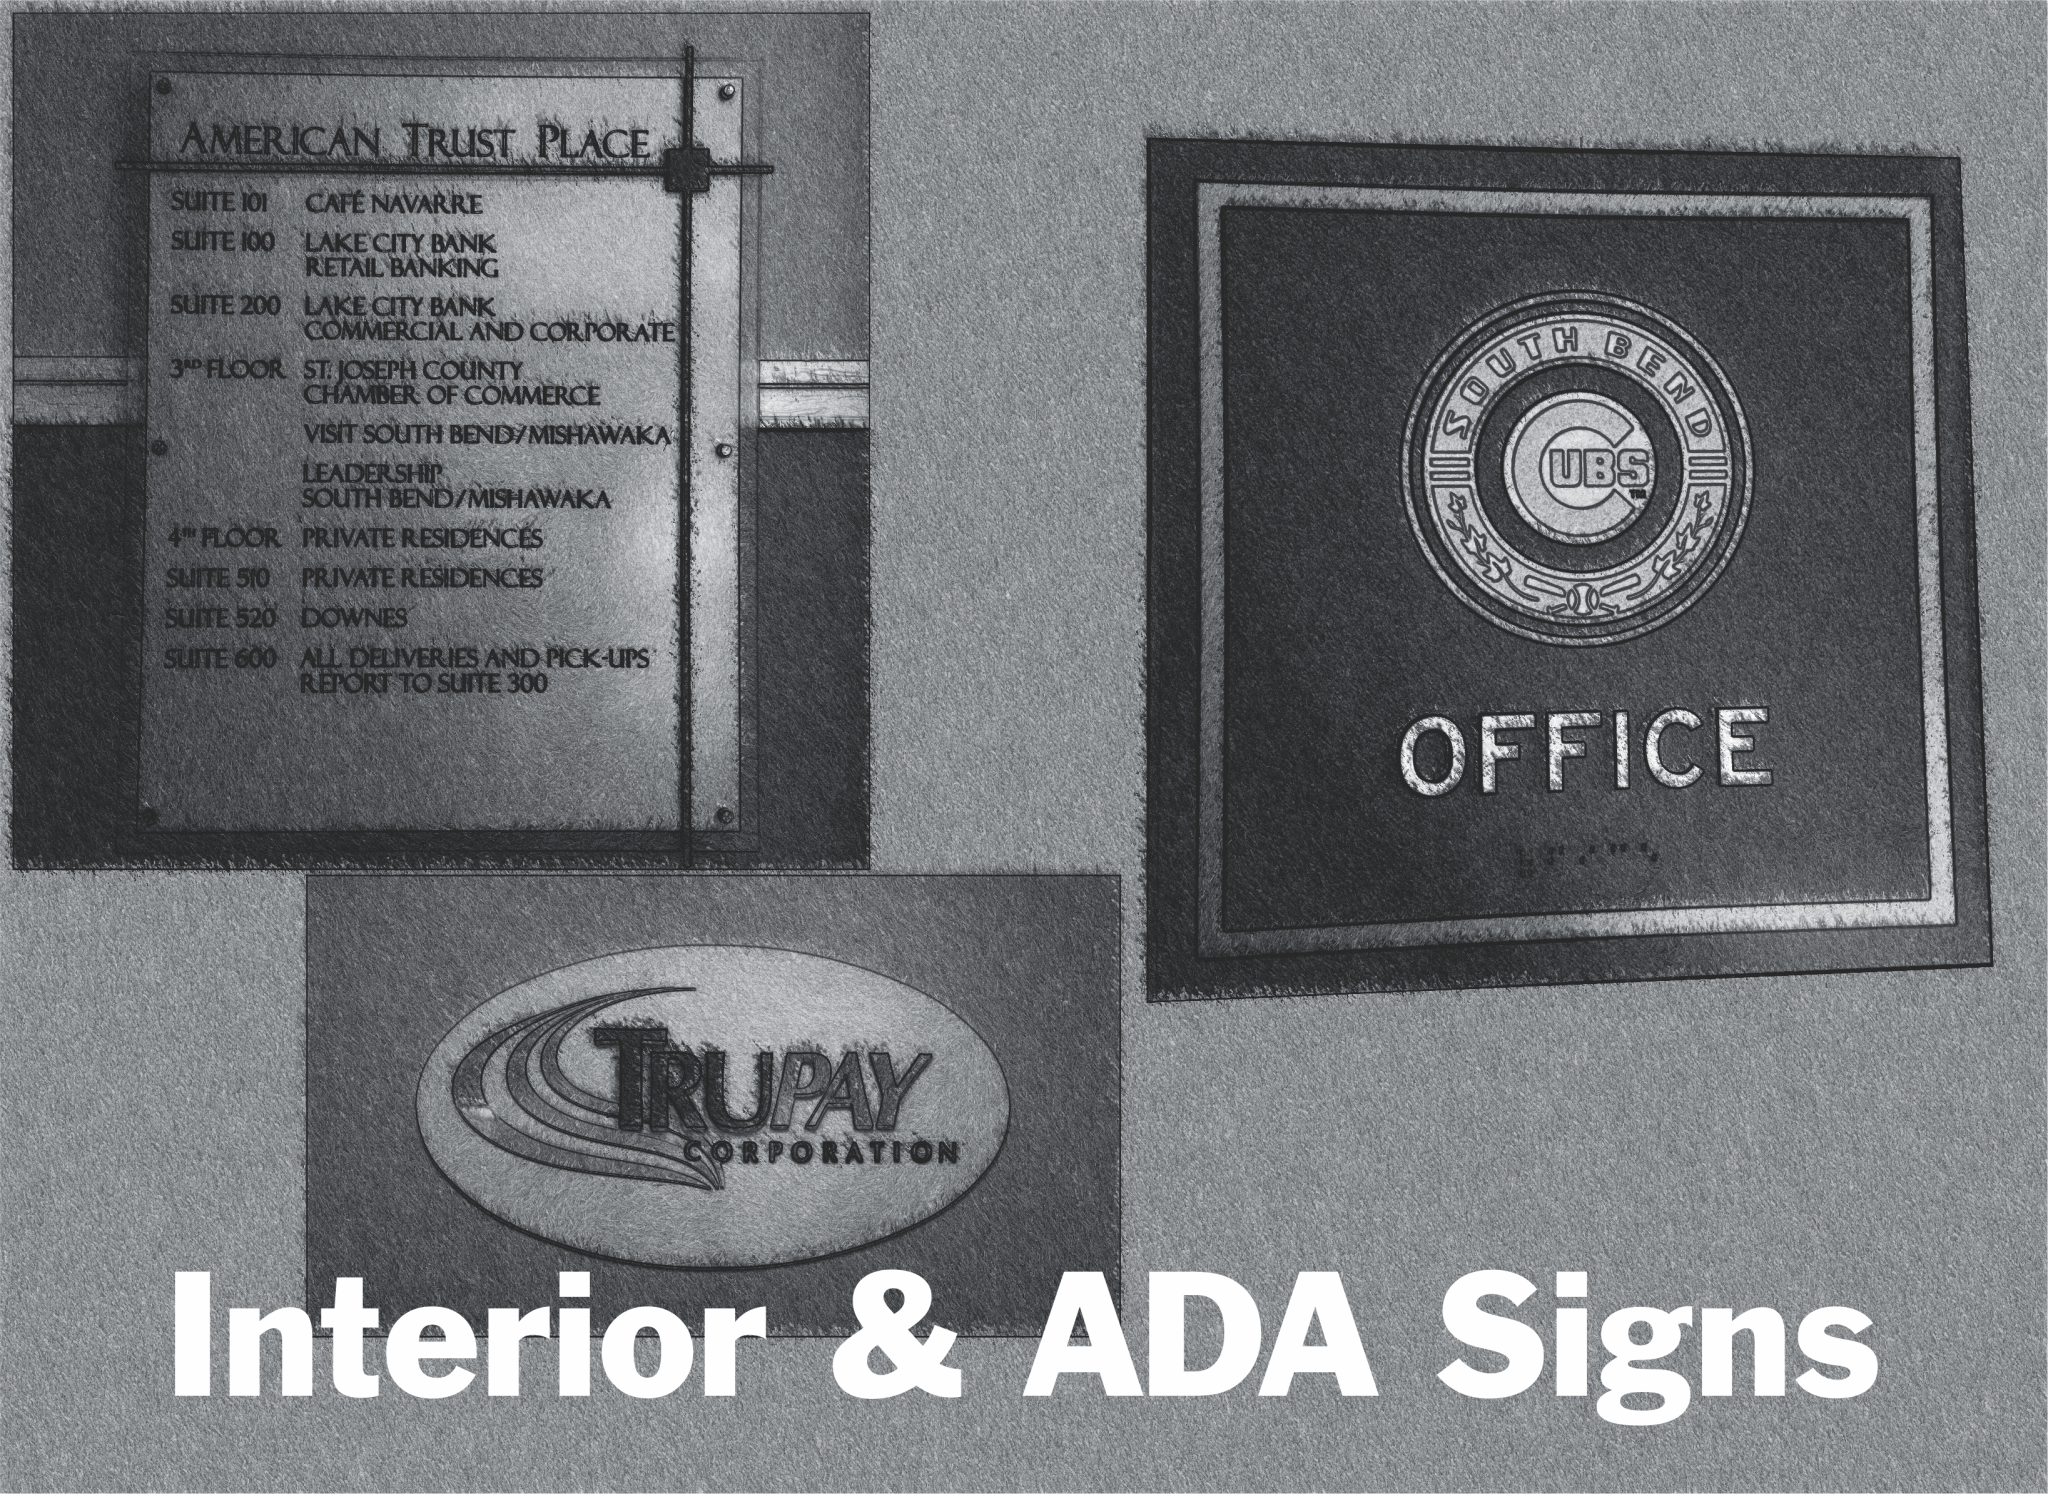 Interior and ADA Signs